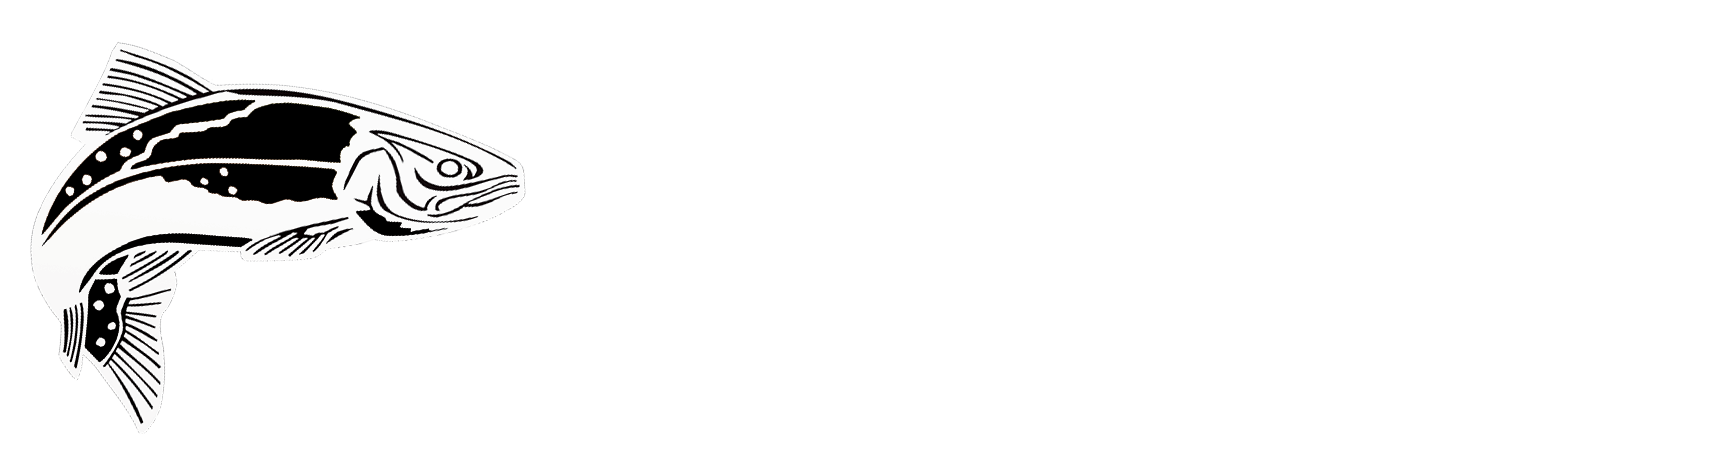 Native Fish Keepers, INC.